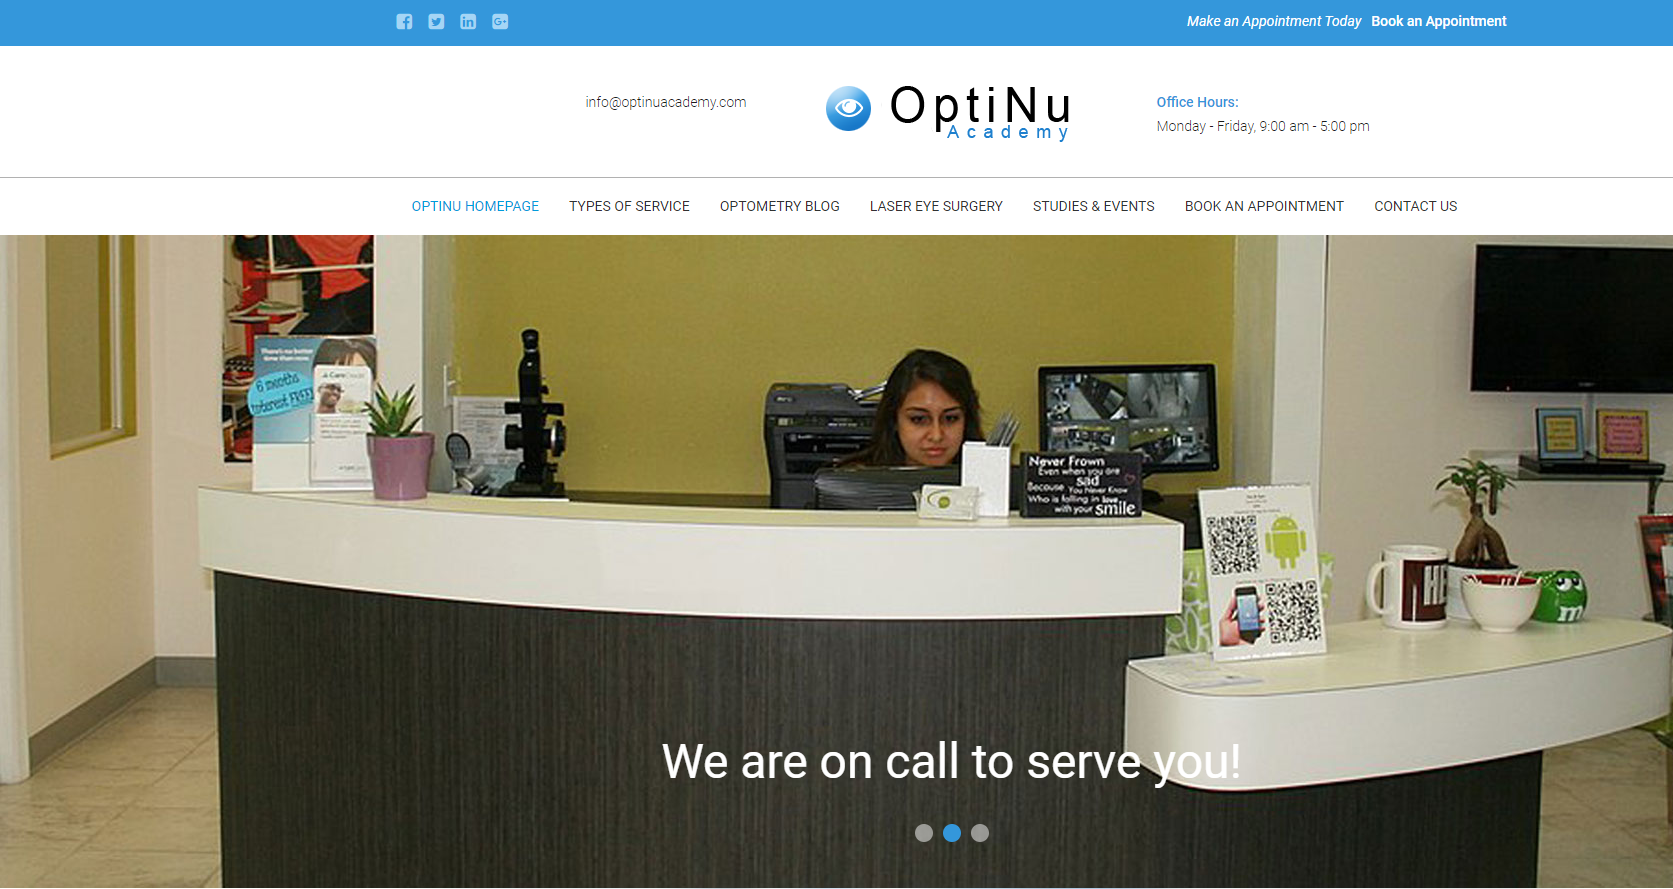 optinu academy scam fake reception